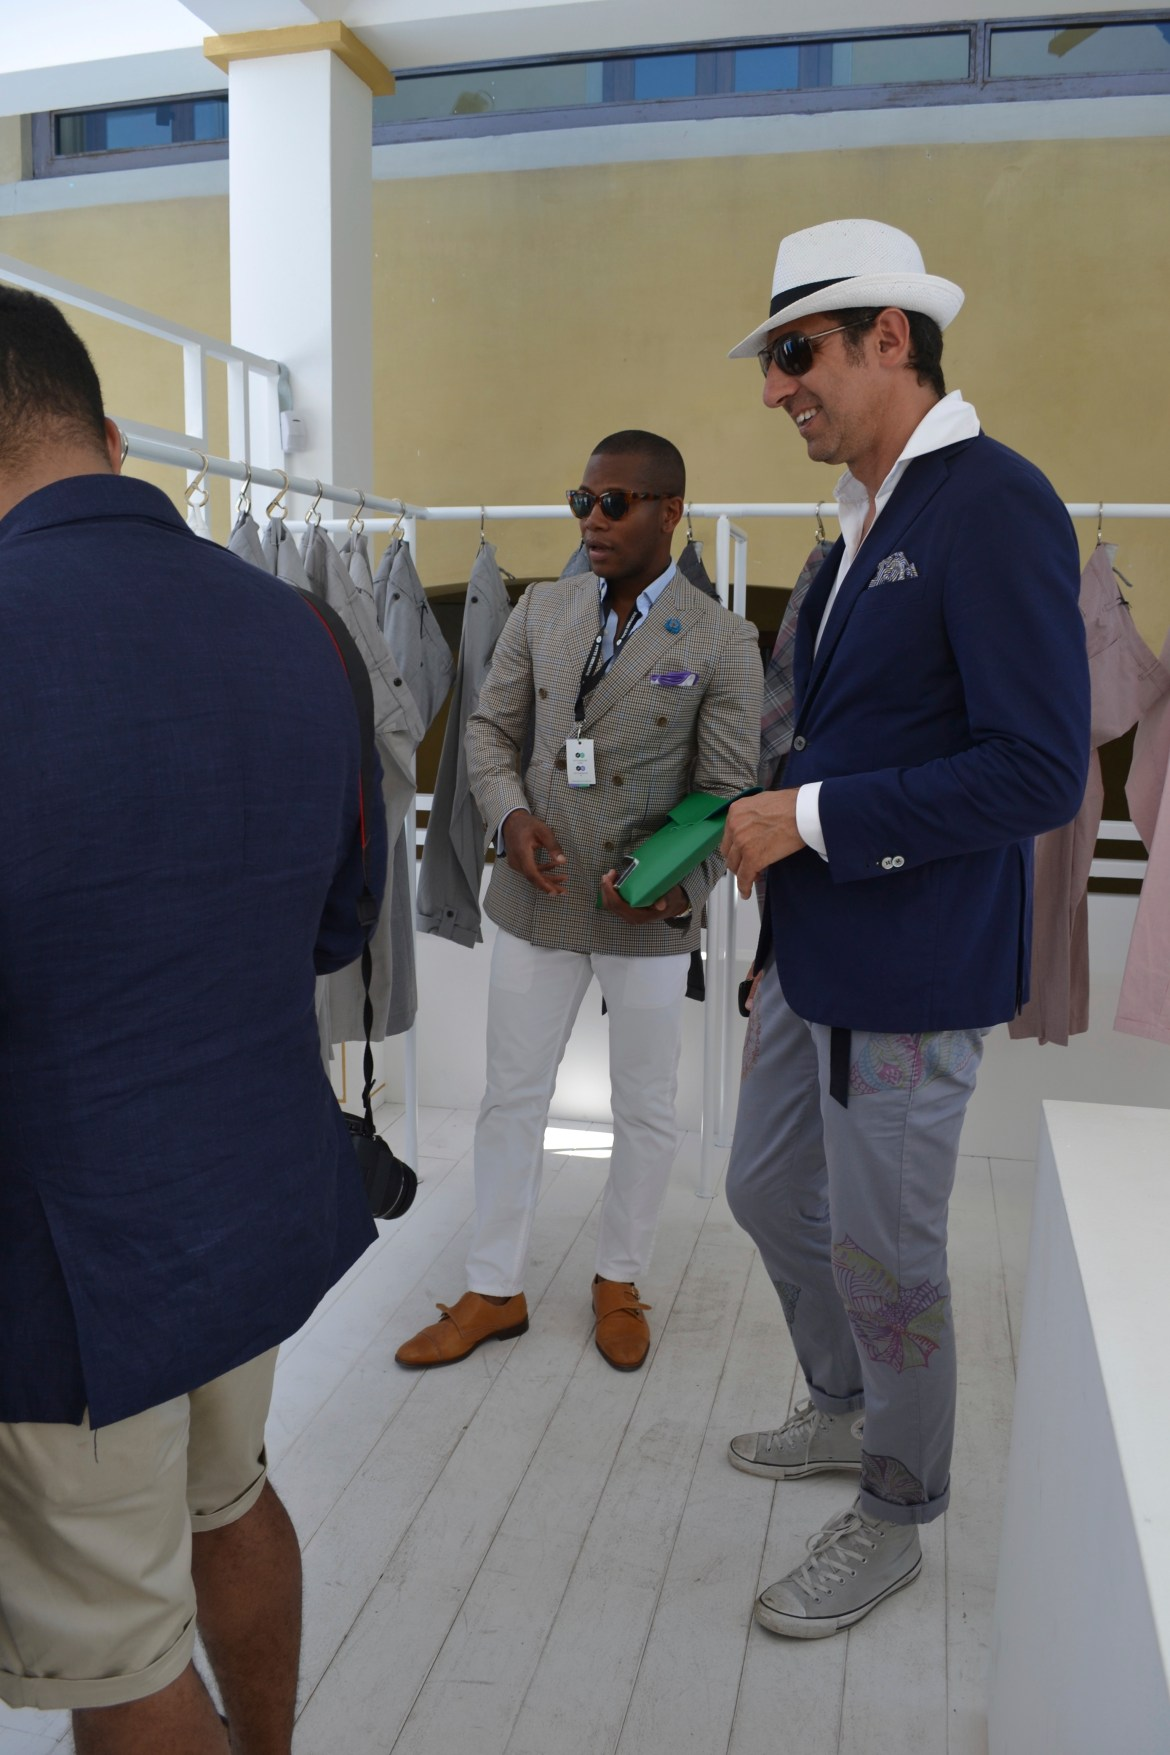 Eyeing up a collections at Pitti